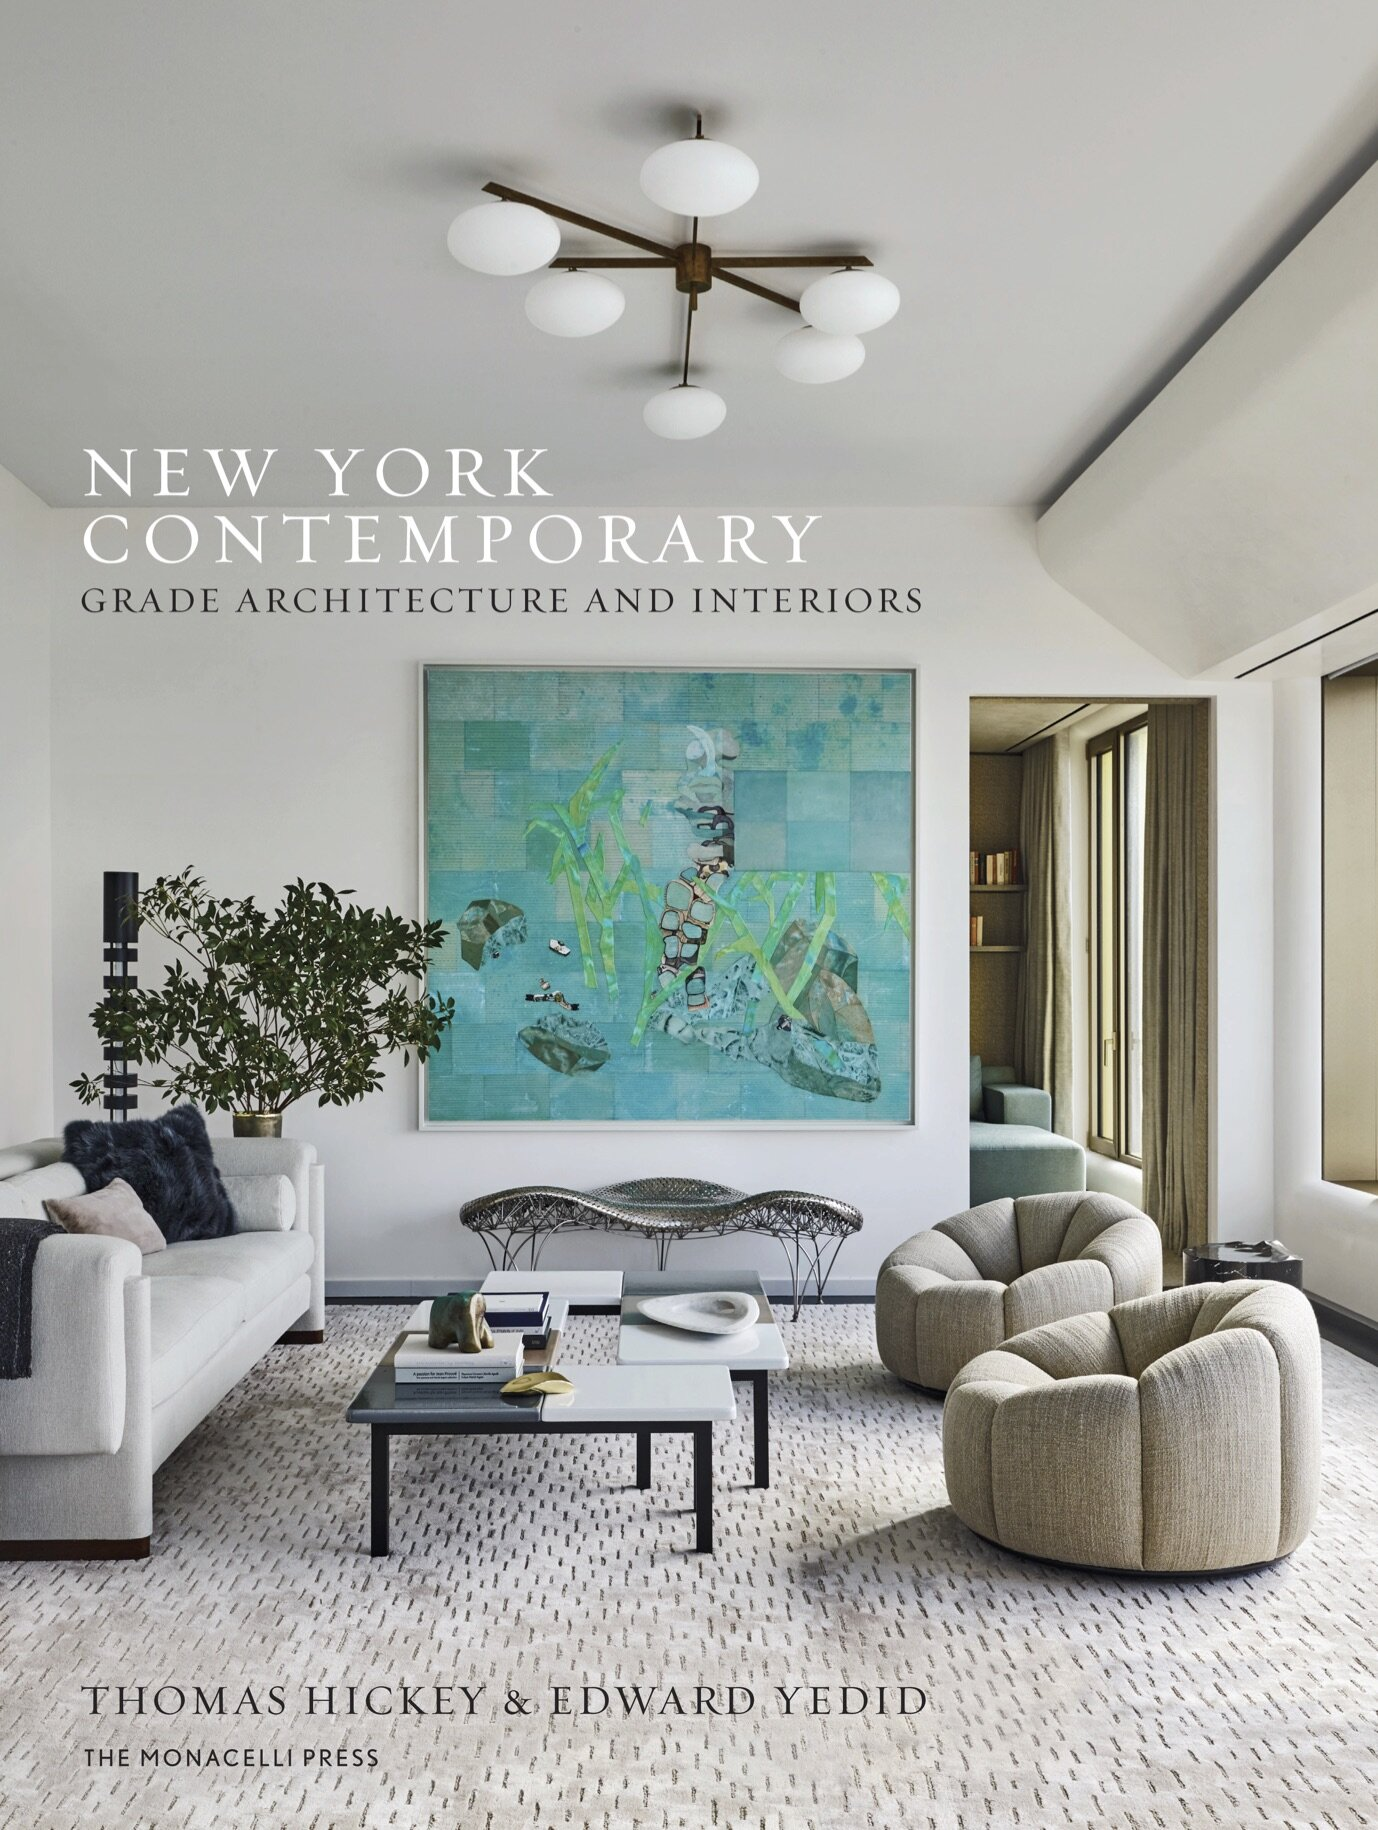 Architect Thomas Hickey and interior designer Edward Yedid partnered to establish GRADE New York as a unique practice where architecture and interiors merge into a seamless continuum. Within their refined and beautifully proportioned spaces, a meticulously curated selection of furnishings, contemporary art, and exquisite objects create a luxurious and personal environment for their clients.